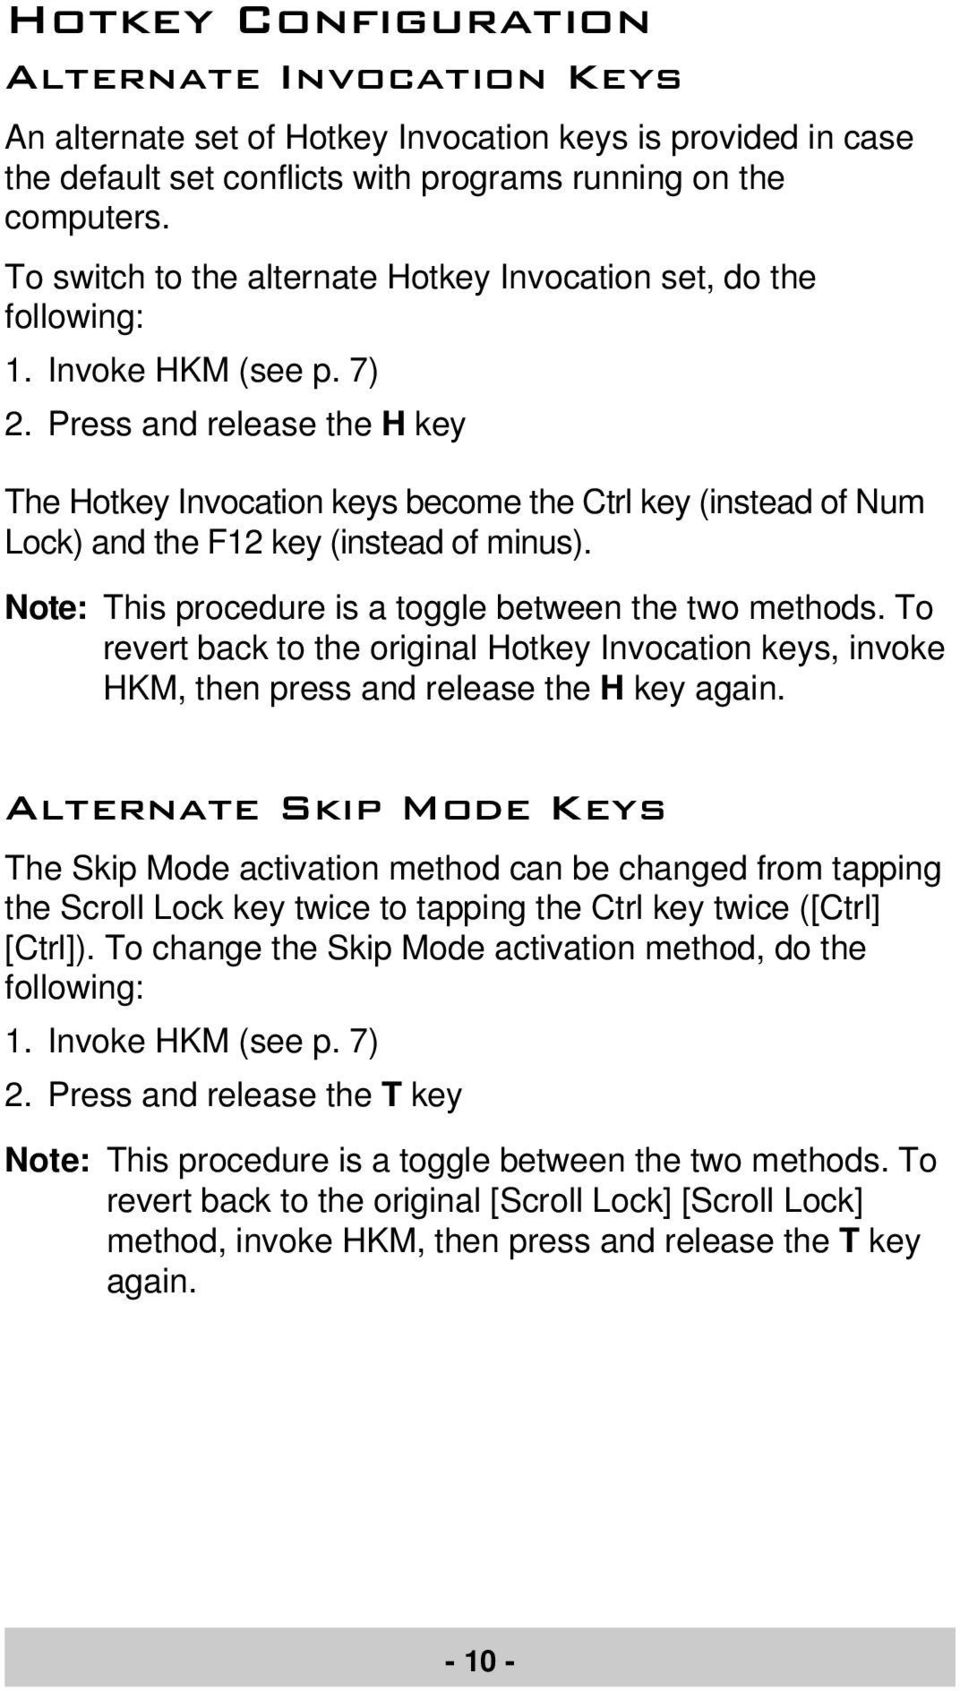 Press and release the H key The Hotkey Invocation keys become the Ctrl key (instead of Num Lock) and the F12 key (instead of minus). Note: This procedure is a toggle between the two methods.